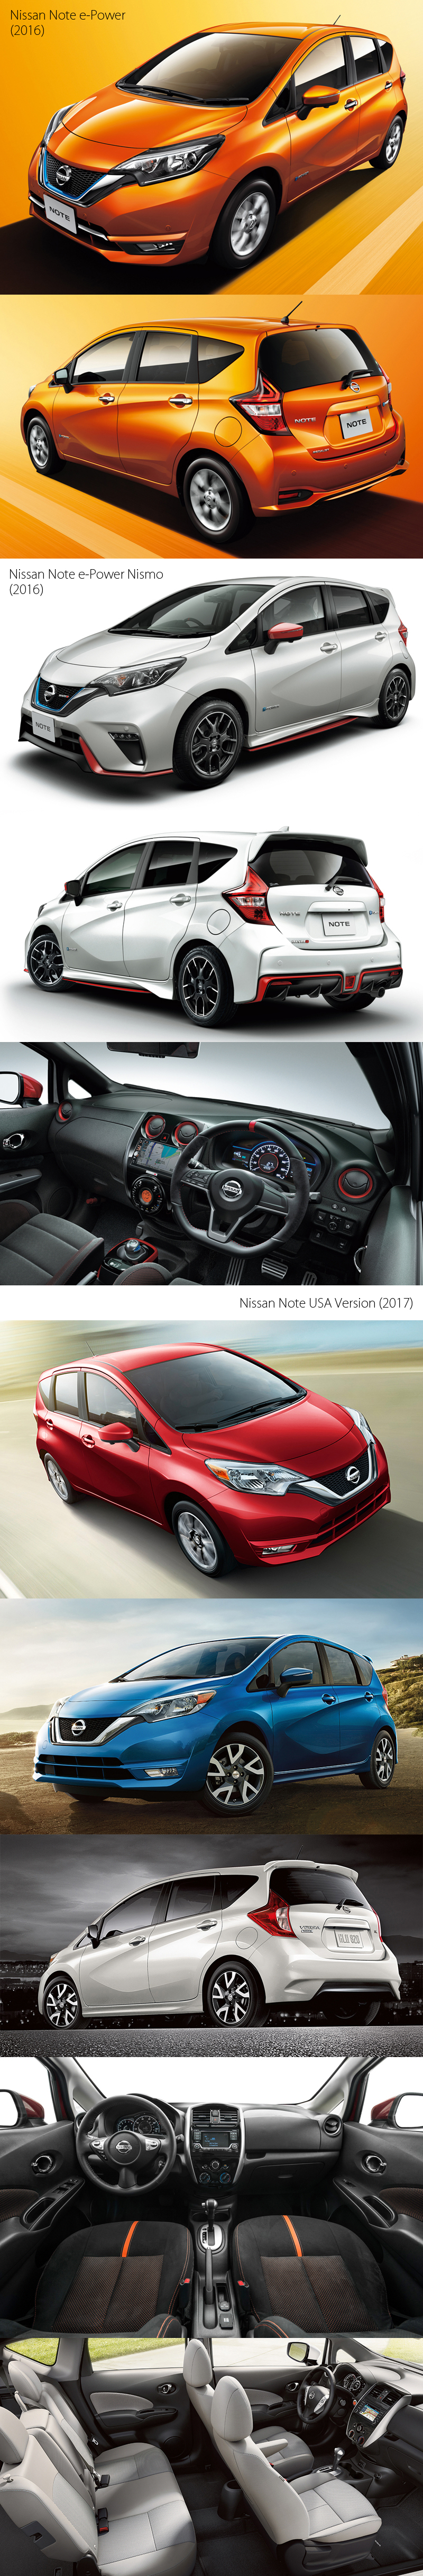 2017_Nissan_Note